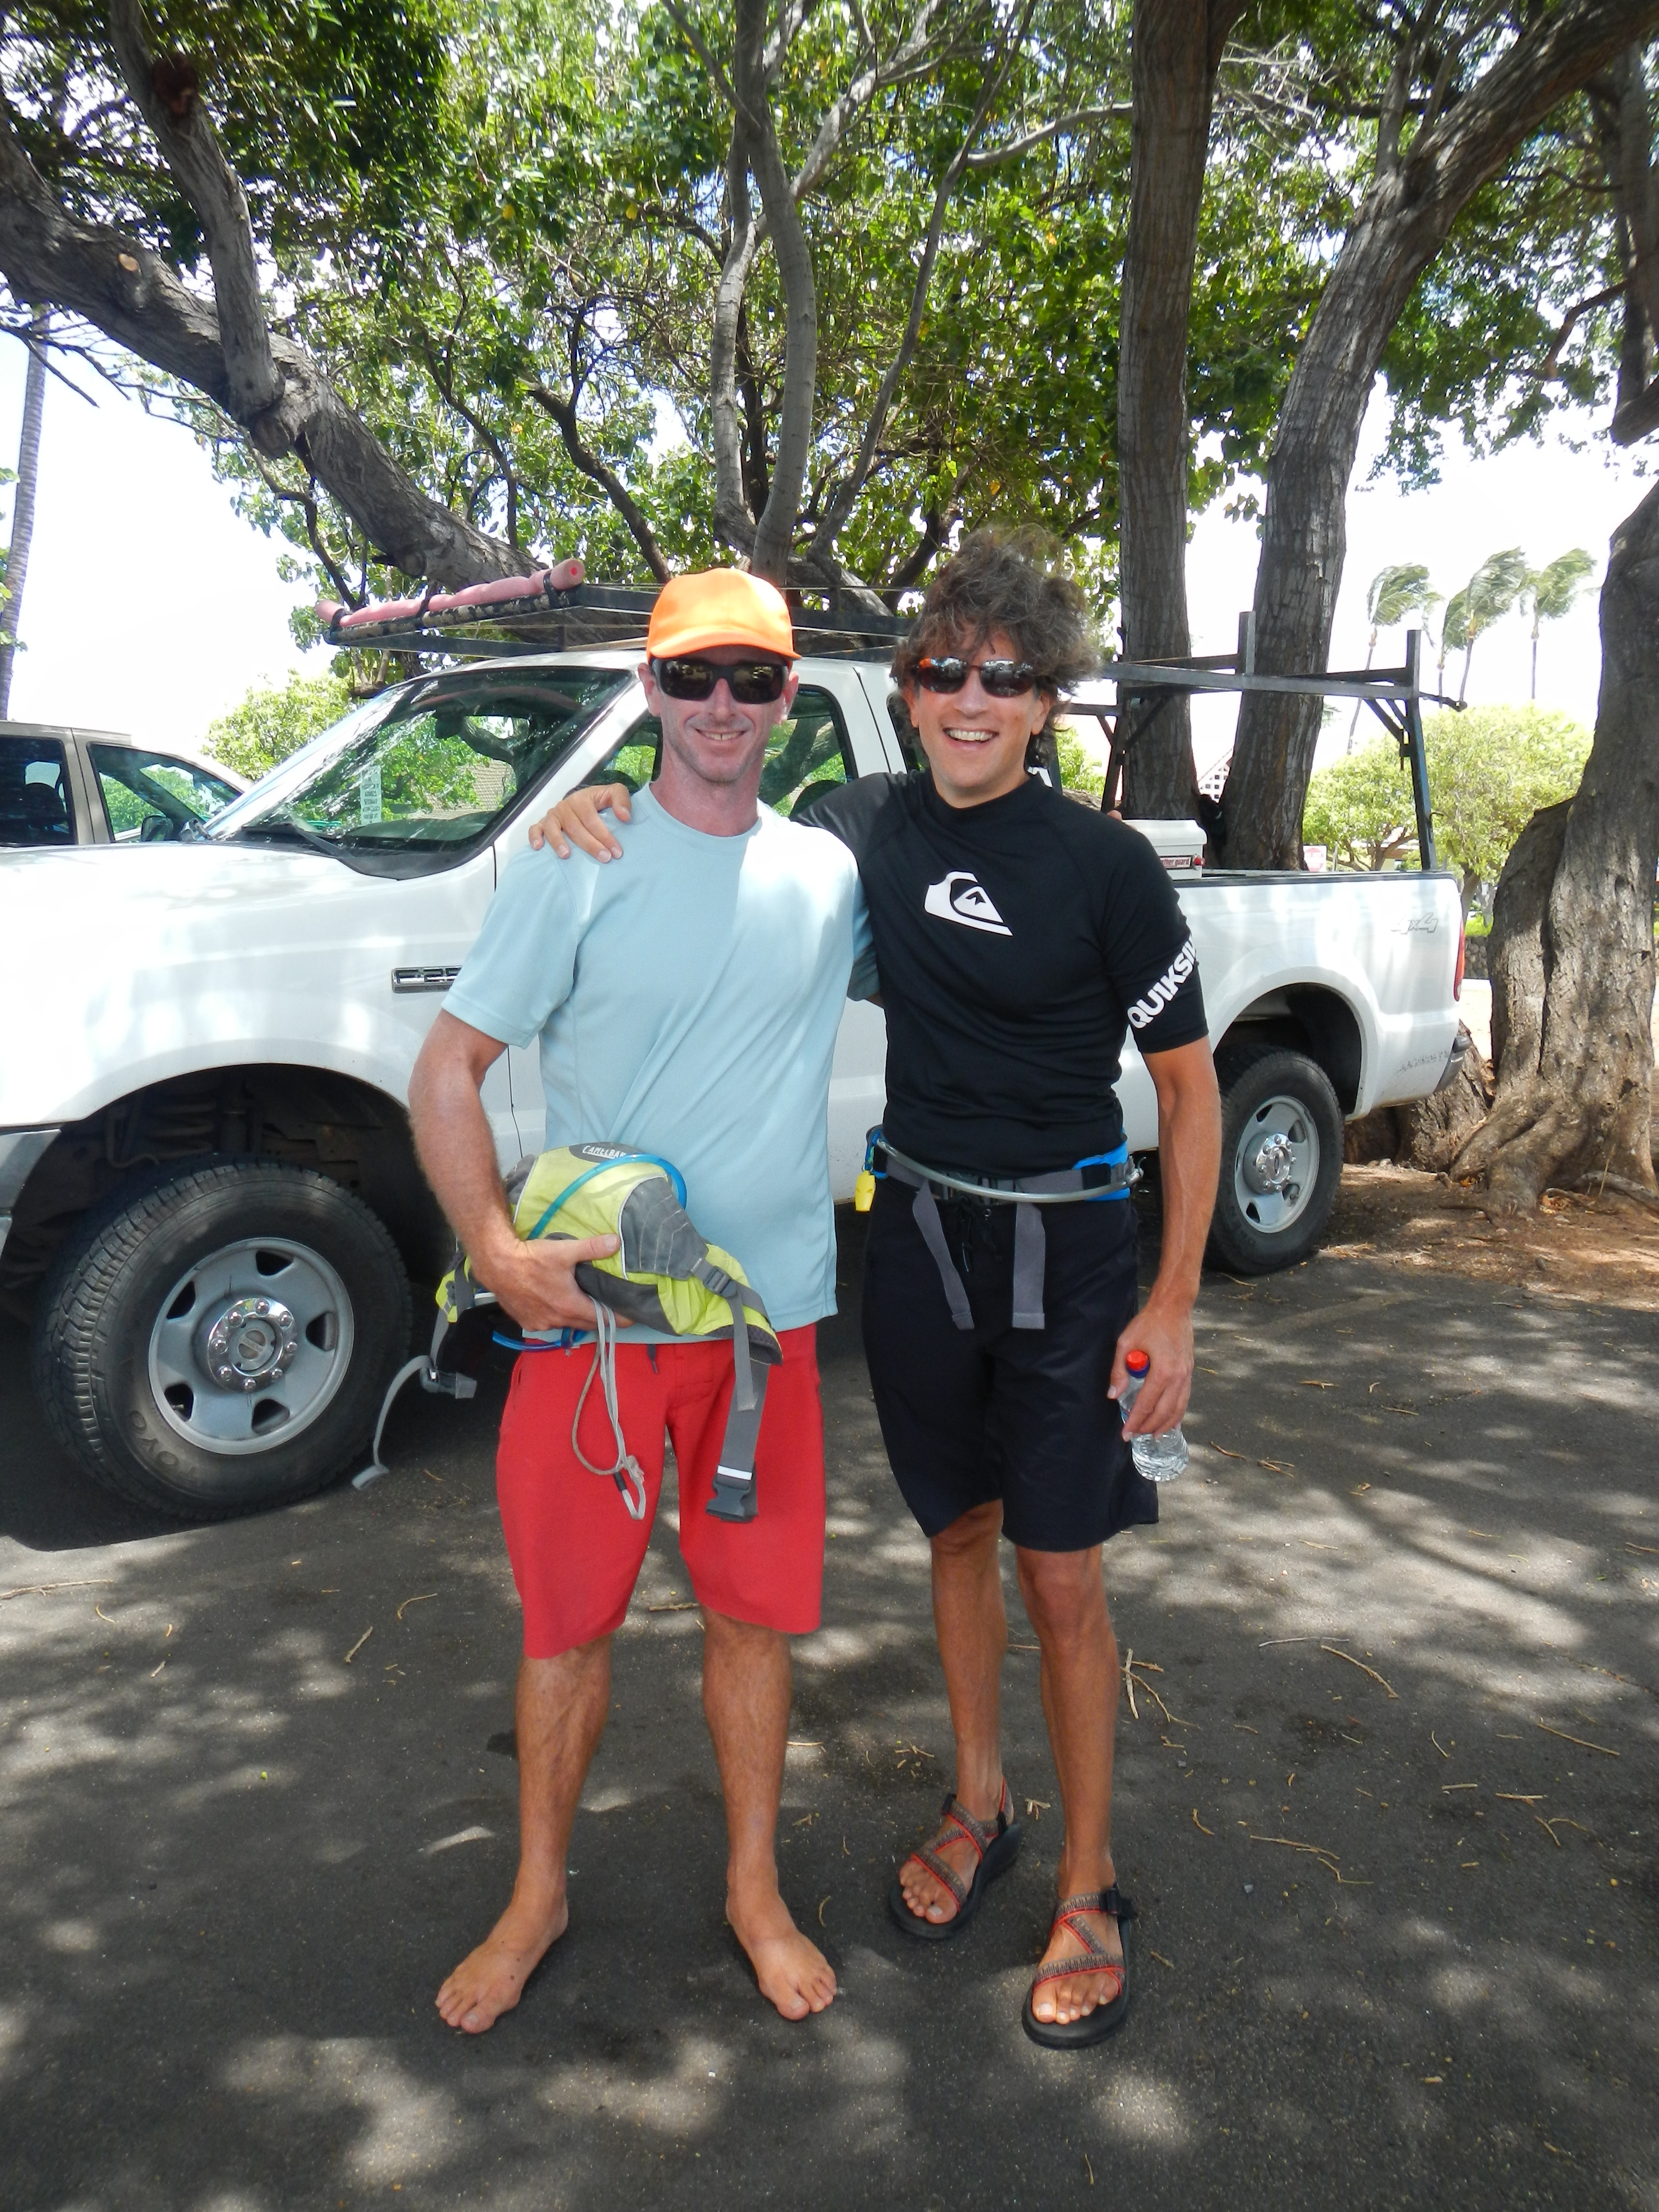 With Downwind legend Jeremy Riggs